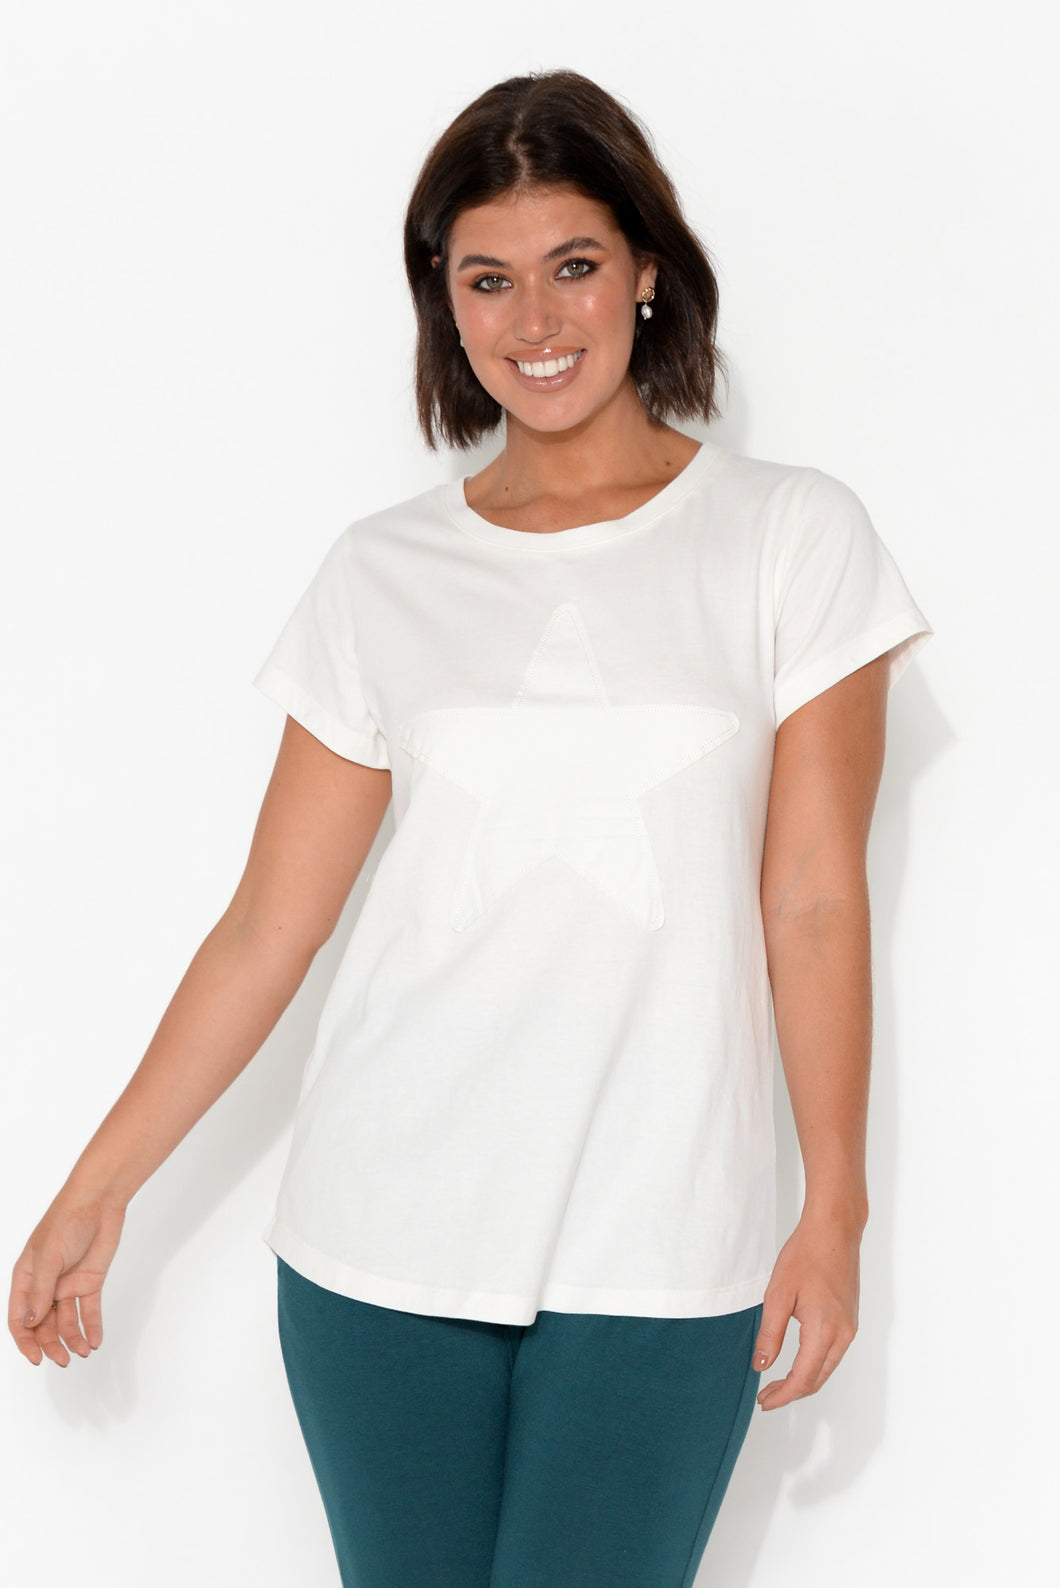 Shine Bright White Star Tee